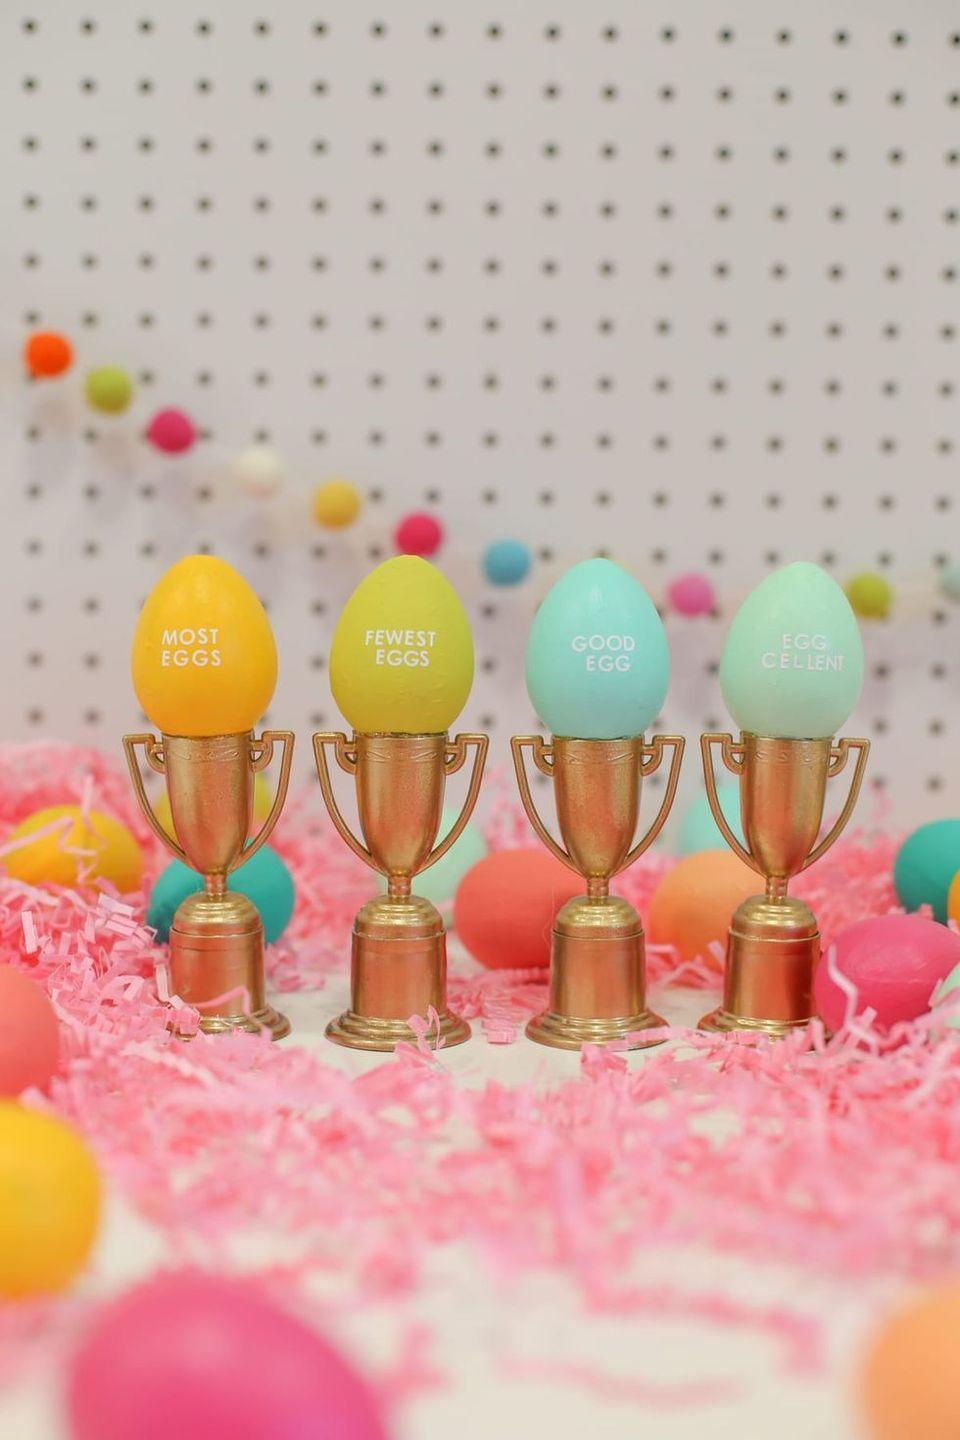 """<p>Sure, chocolate is the <em>actual</em> trophy when it comes to Easter egg hunts. But an additional real one doesn't hurt!</p><p><strong>Get the tutorial at <a href=""""https://lovelyindeed.com/make-these-tiny-trophies-for-your-easter-egg-hunts/"""" rel=""""nofollow noopener"""" target=""""_blank"""" data-ylk=""""slk:Lovely Indeed"""" class=""""link rapid-noclick-resp"""">Lovely Indeed</a>.</strong></p><p><strong><a class=""""link rapid-noclick-resp"""" href=""""https://www.amazon.com/Juvale-Award-Trophies-Tournaments-Competitions/dp/B077HFZH4T/ref=sr_1_5?dchild=1&keywords=small+trophies&qid=1614112746&sr=8-5&tag=syn-yahoo-20&ascsubtag=%5Bartid%7C10050.g.4083%5Bsrc%7Cyahoo-us"""" rel=""""nofollow noopener"""" target=""""_blank"""" data-ylk=""""slk:SHOP TROPHIES"""">SHOP TROPHIES</a><br></strong></p>"""